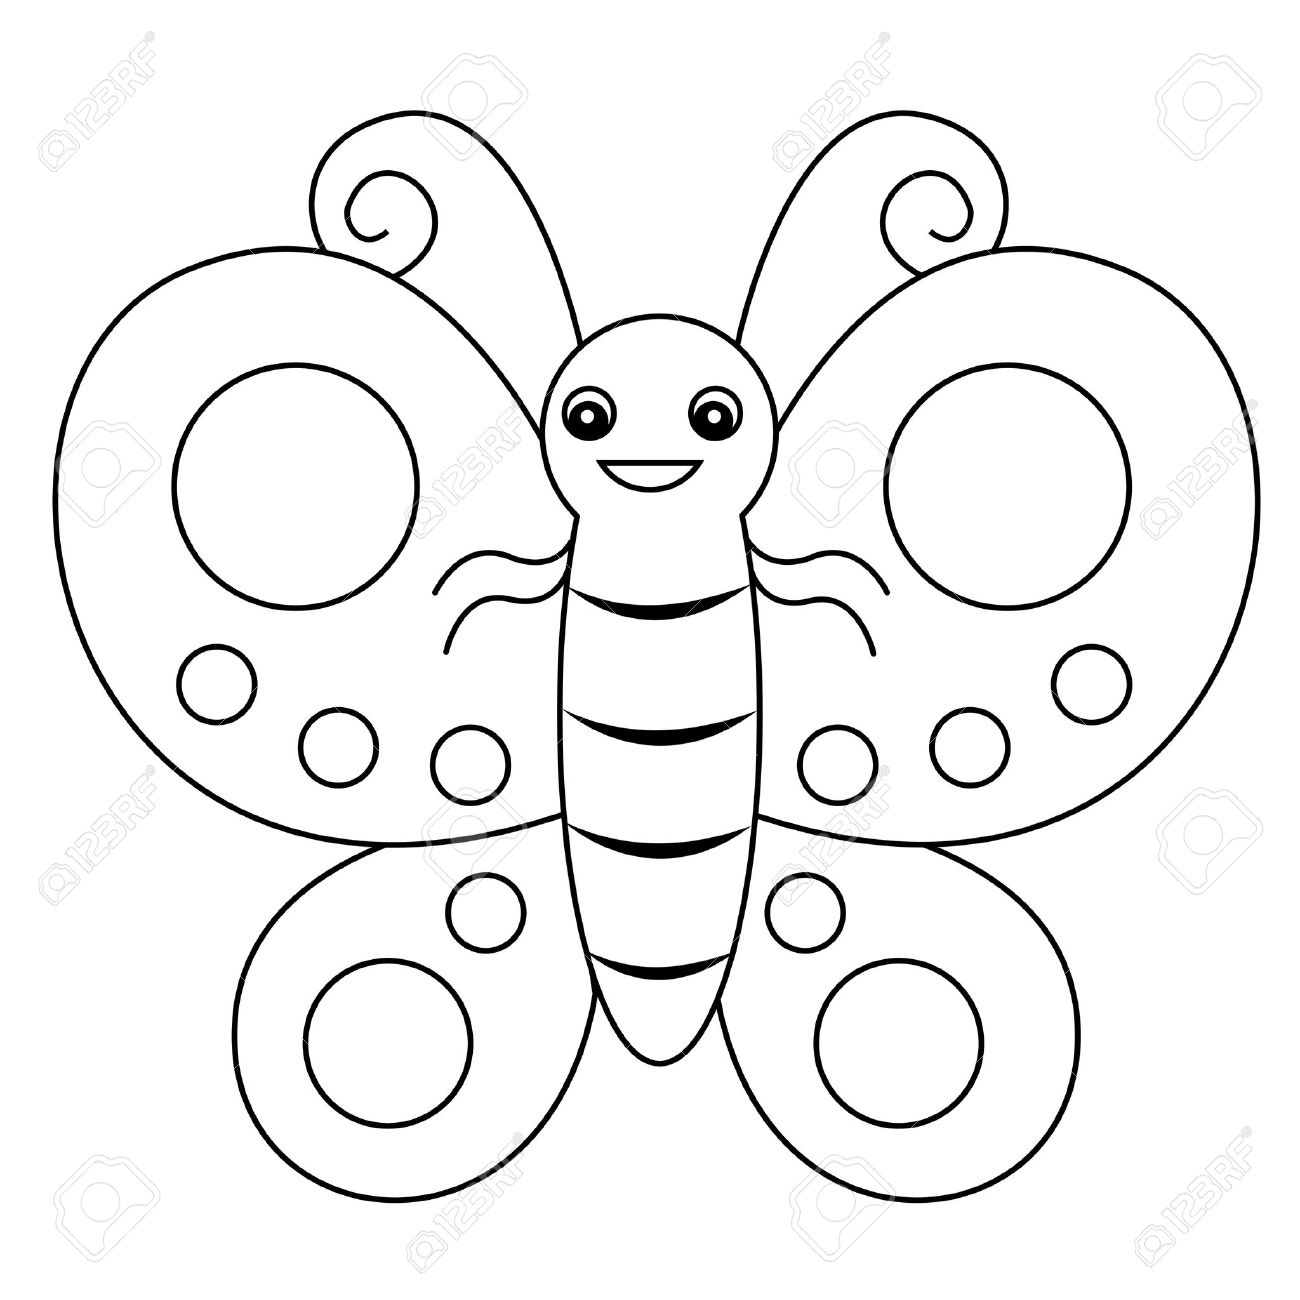 Cute Outlined Butterfly Printable Graphic For Pre School Kids Coloring Book Pages Stock Vector